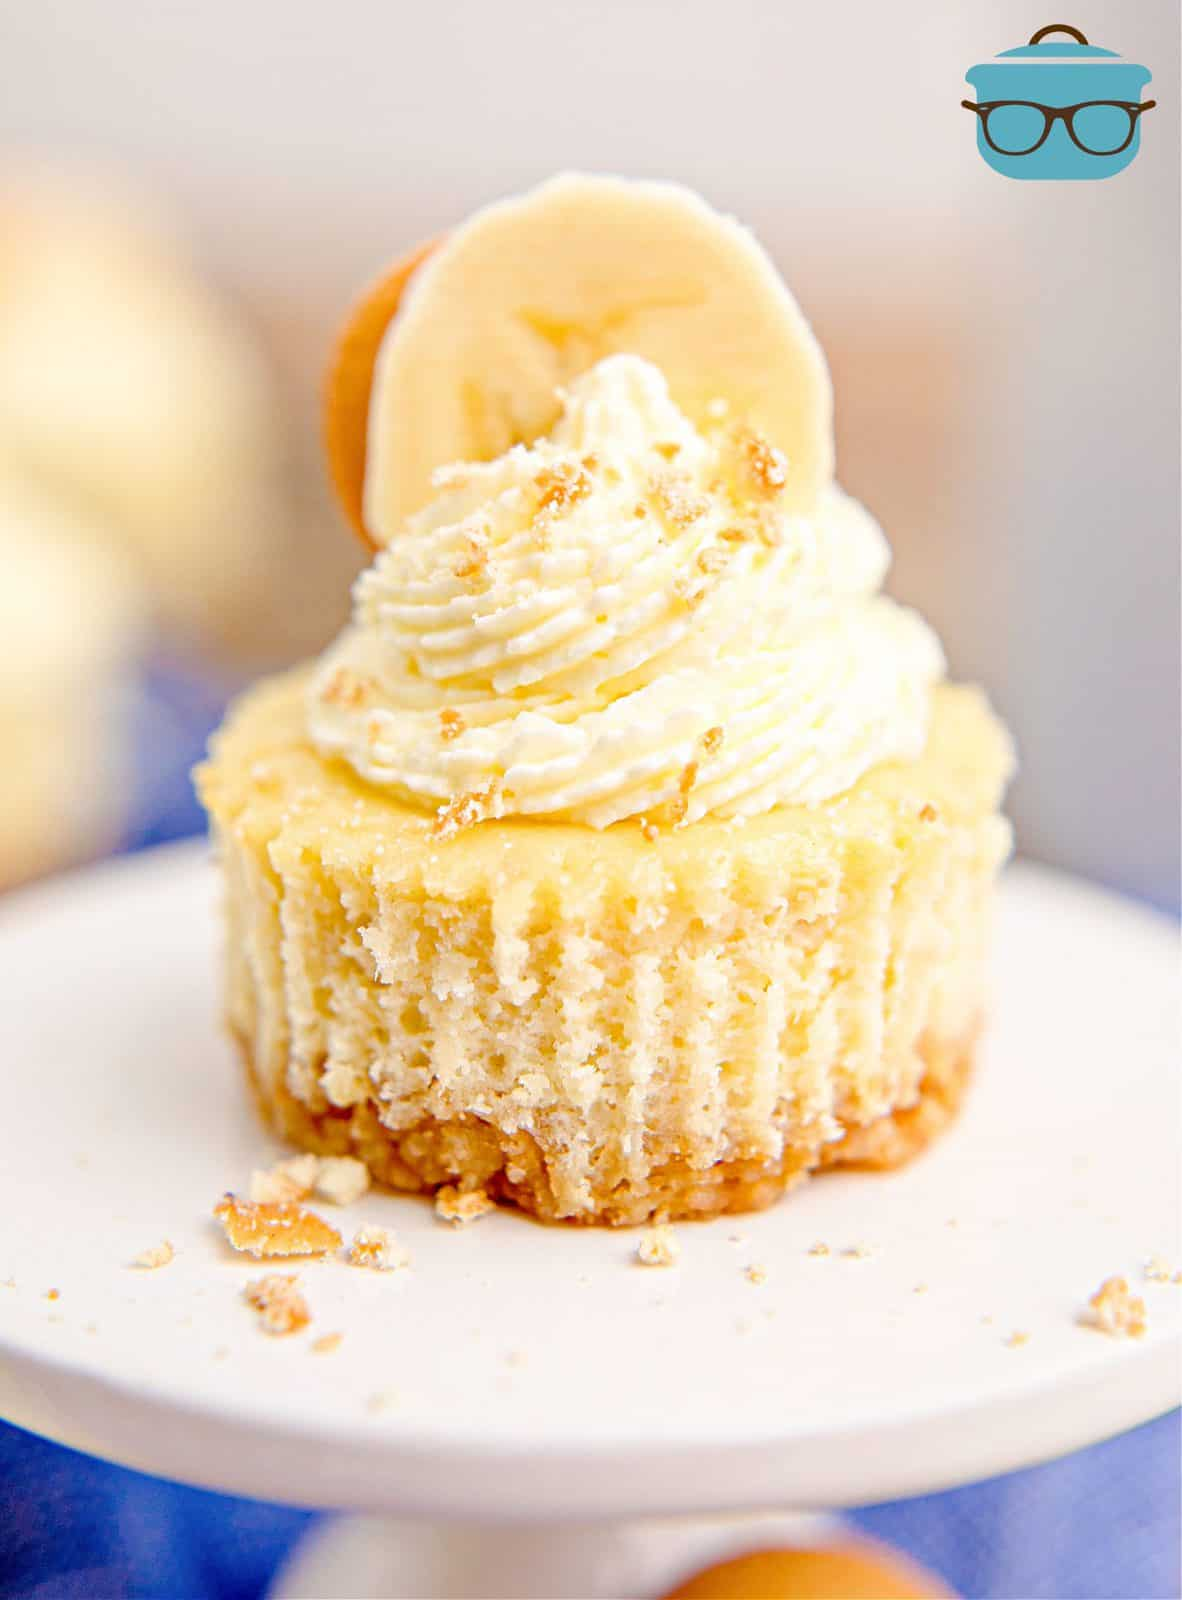 One Mini Banana Pudding Cheesecake on cupcake stand with whipped topping on top and a sliced banana.